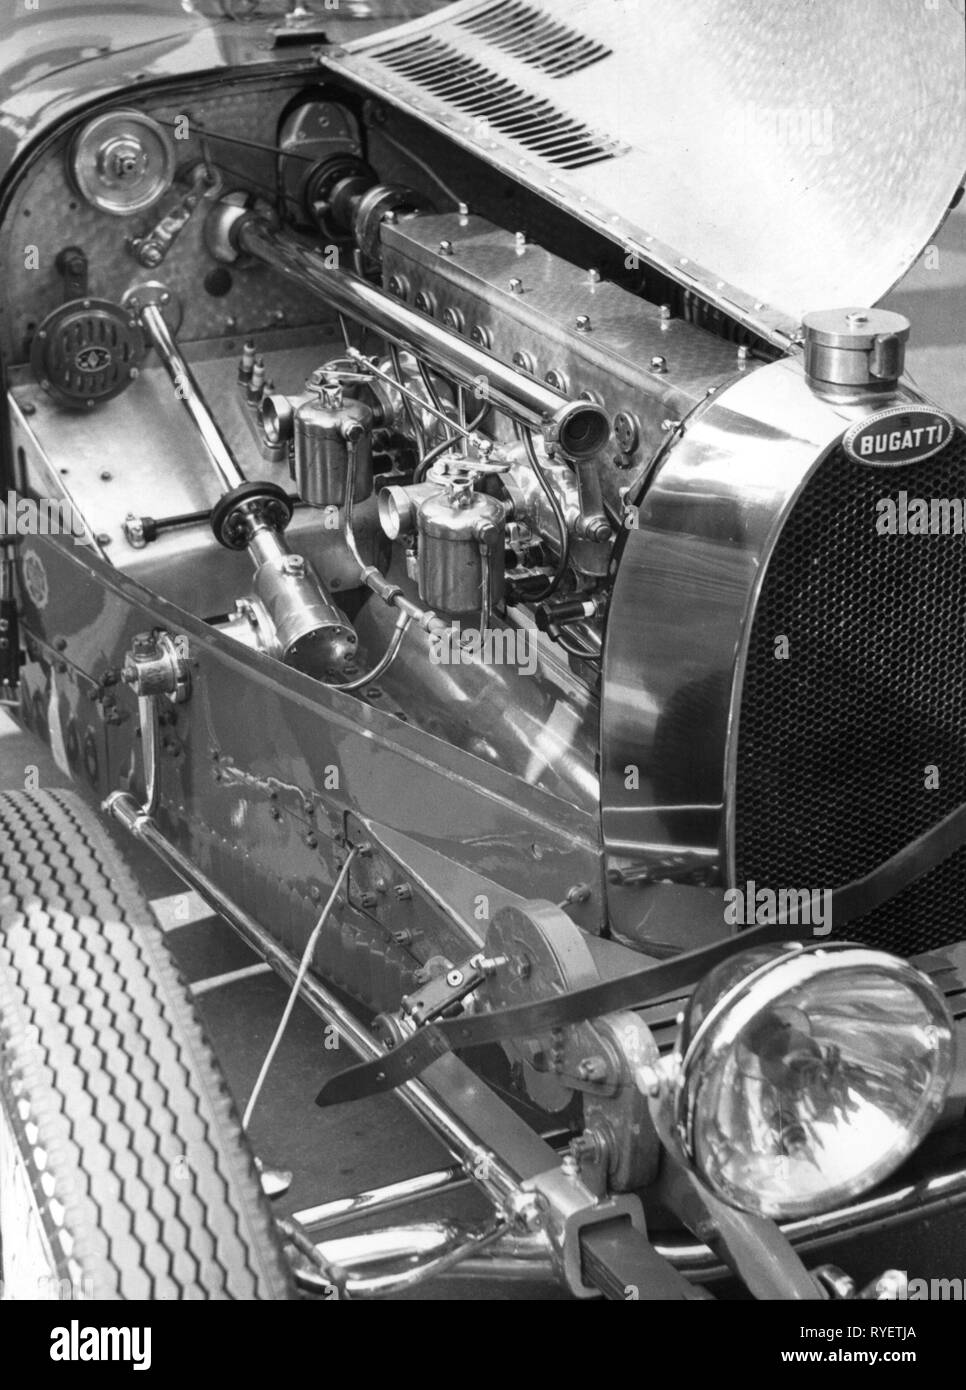 transport / transportation, car, vehicle variants, Bugatti type 30, year of construction: 1925, detail, view under bonnet, 1960, engine, motor, engines, motors, technics, technology, technologies, gear, gearbox, gearing, gear unit, gearing mechanism, transmission, gearcase, gears, gearboxes, gearings, gear units, gearing mechanisms, transmissions, gearcases, touring car, touring cars, transport, transportation, car, cars, vehicle variants, Italy, 60s, 1920s, 20s, 20th century, 1960s, type, types, detail, details, view, views, bonnet, hood, bonnet, Additional-Rights-Clearance-Info-Not-Available - Stock Image